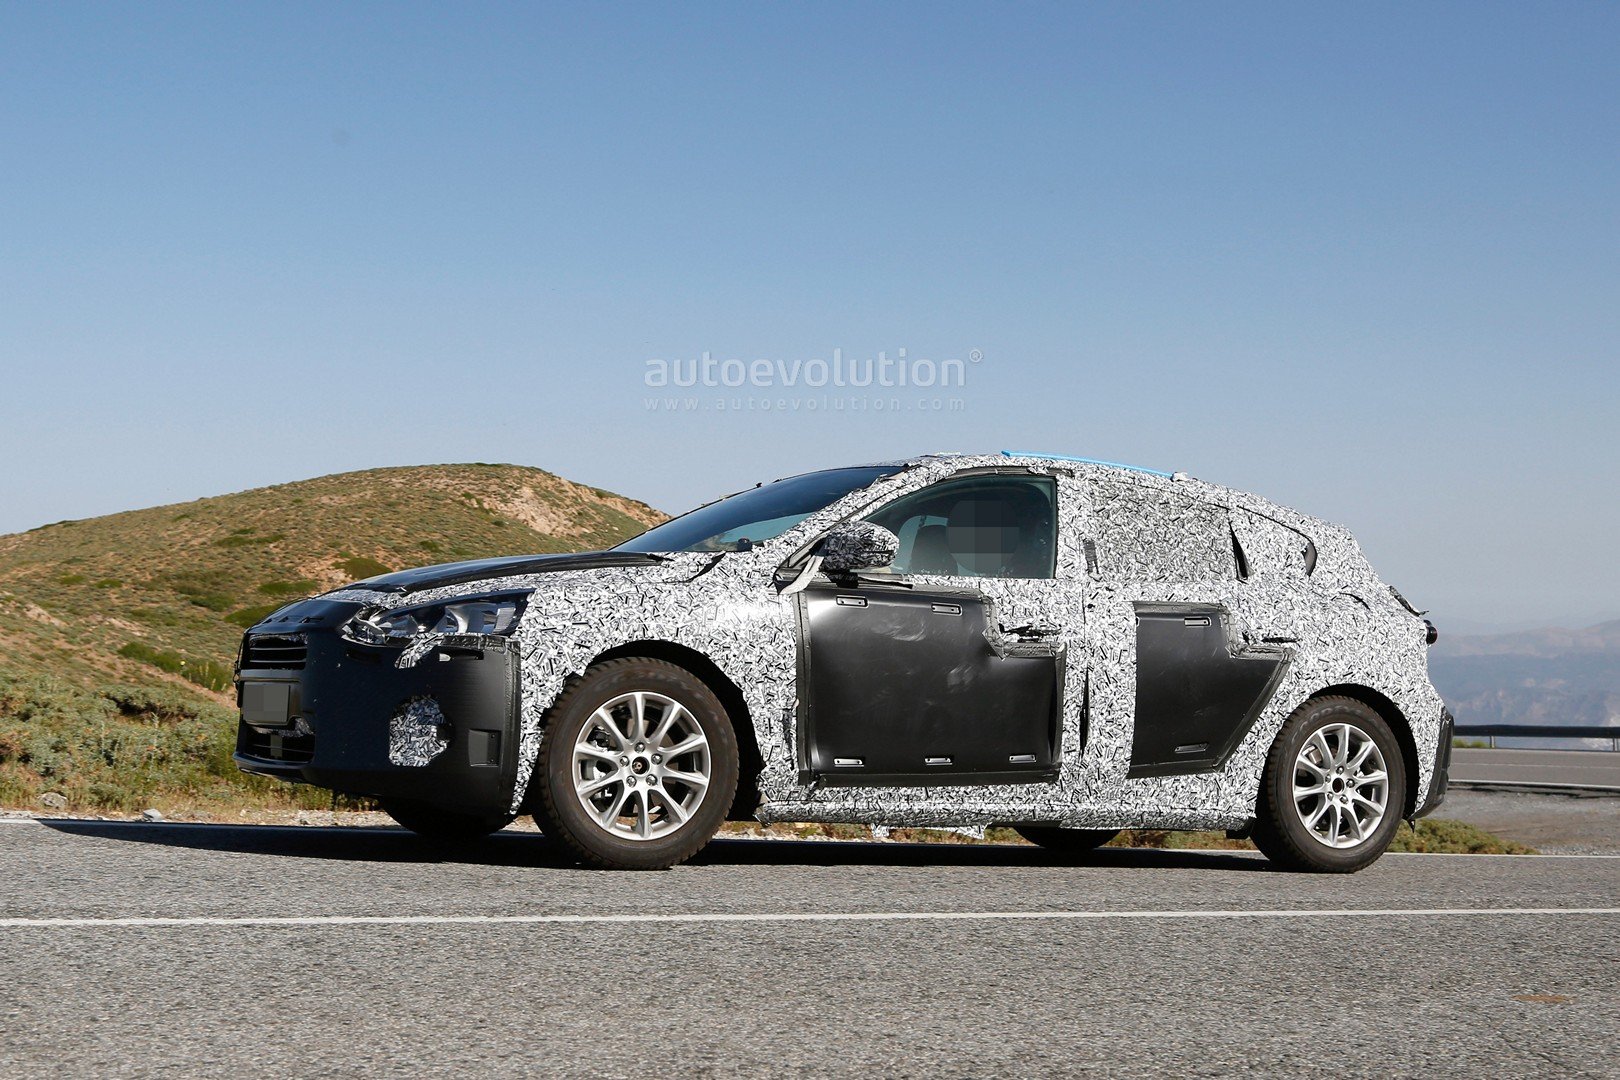 ... 2019 Ford Focus Interior Spied in Detail Has Digital Dash and Fiesta- Like Setup ... & New Ford Focus Hatchback Spied in Spain Engineers Are Poking ... markmcfarlin.com